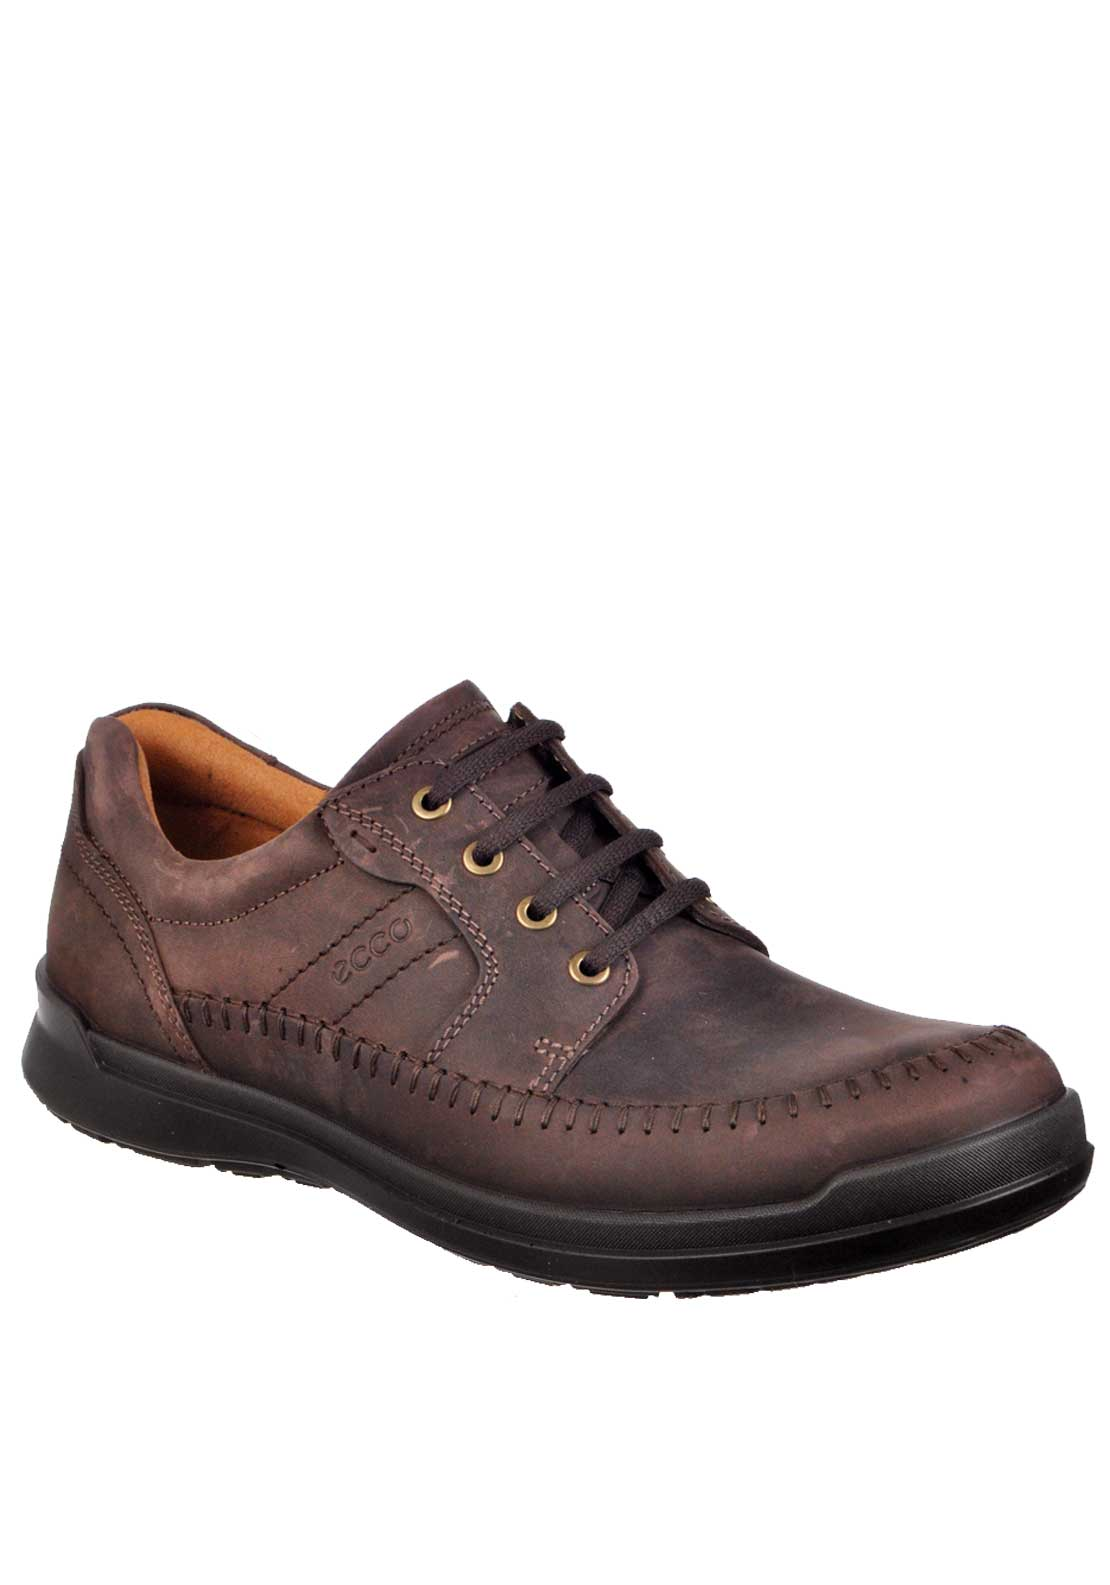 Ecco Mens Howell Lace Up Leather Shoe, Mocha Brown